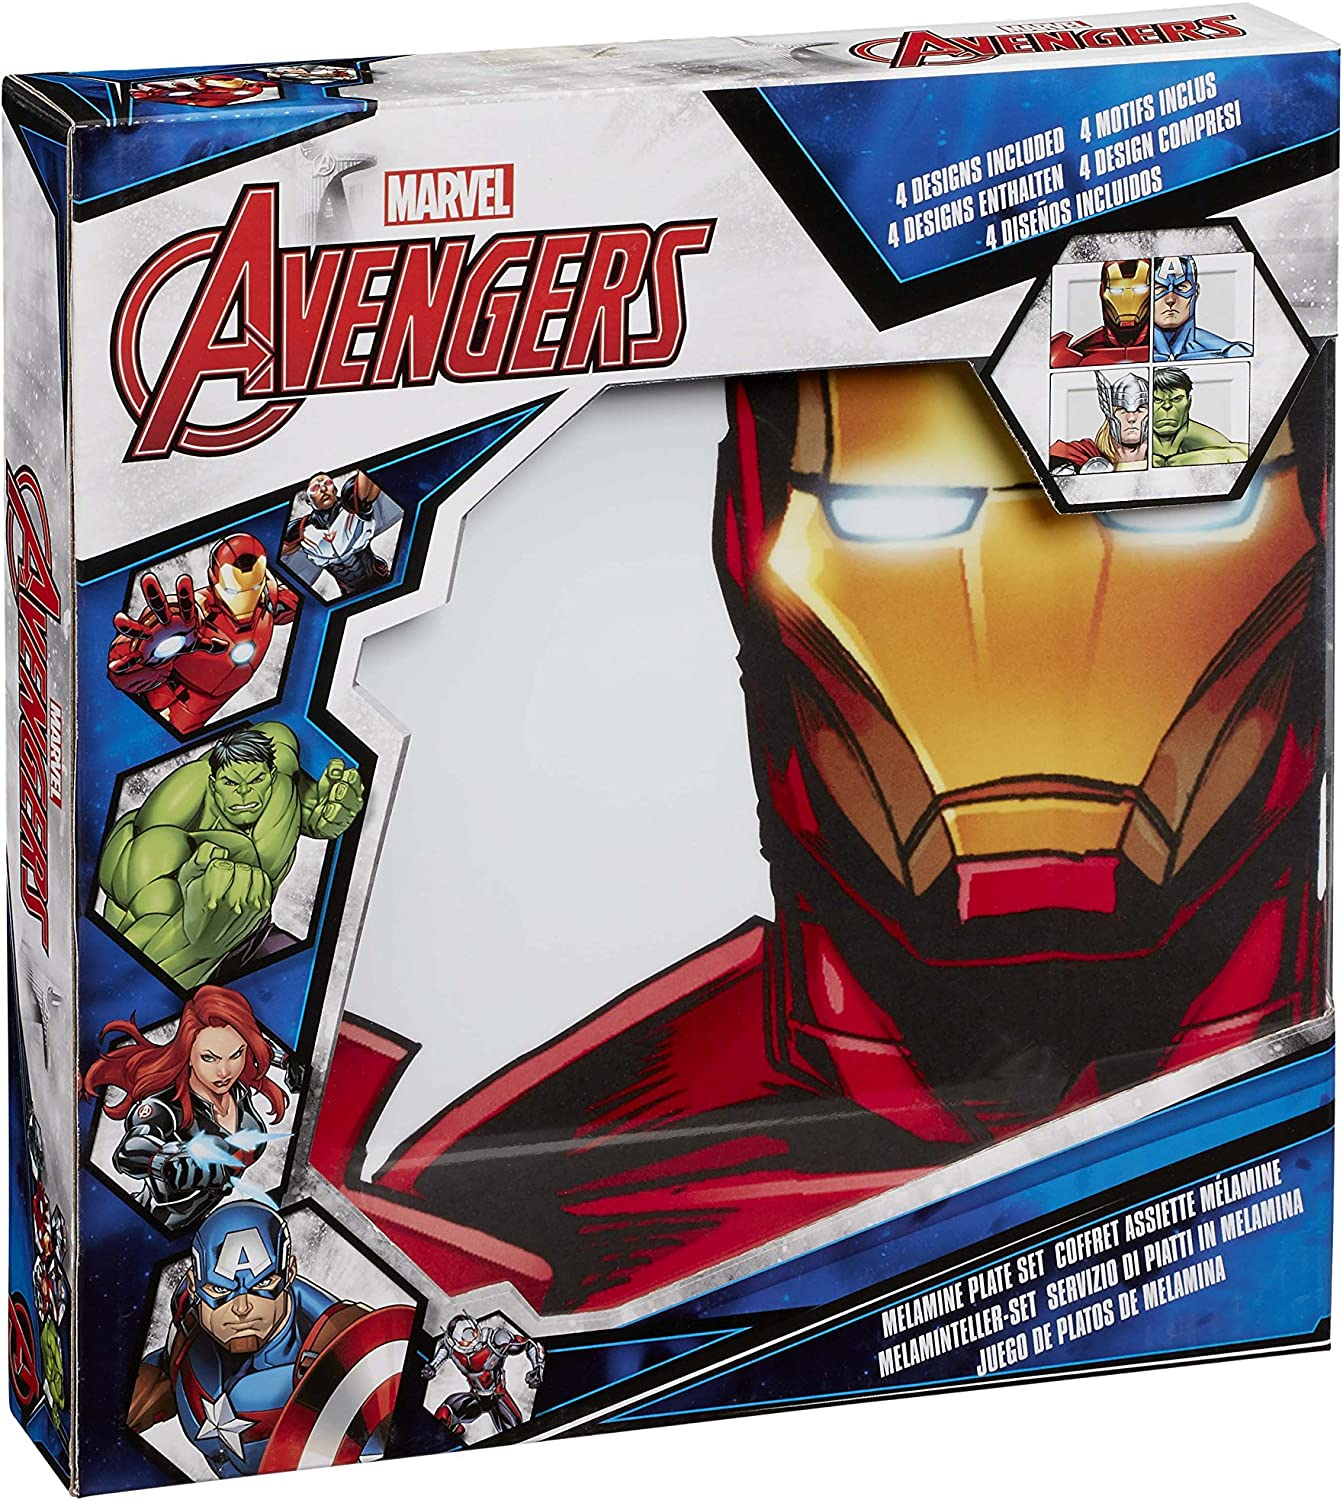 Marvel Avengers Faces/Helmets Plate Set, Multi-Colour, Set of 4